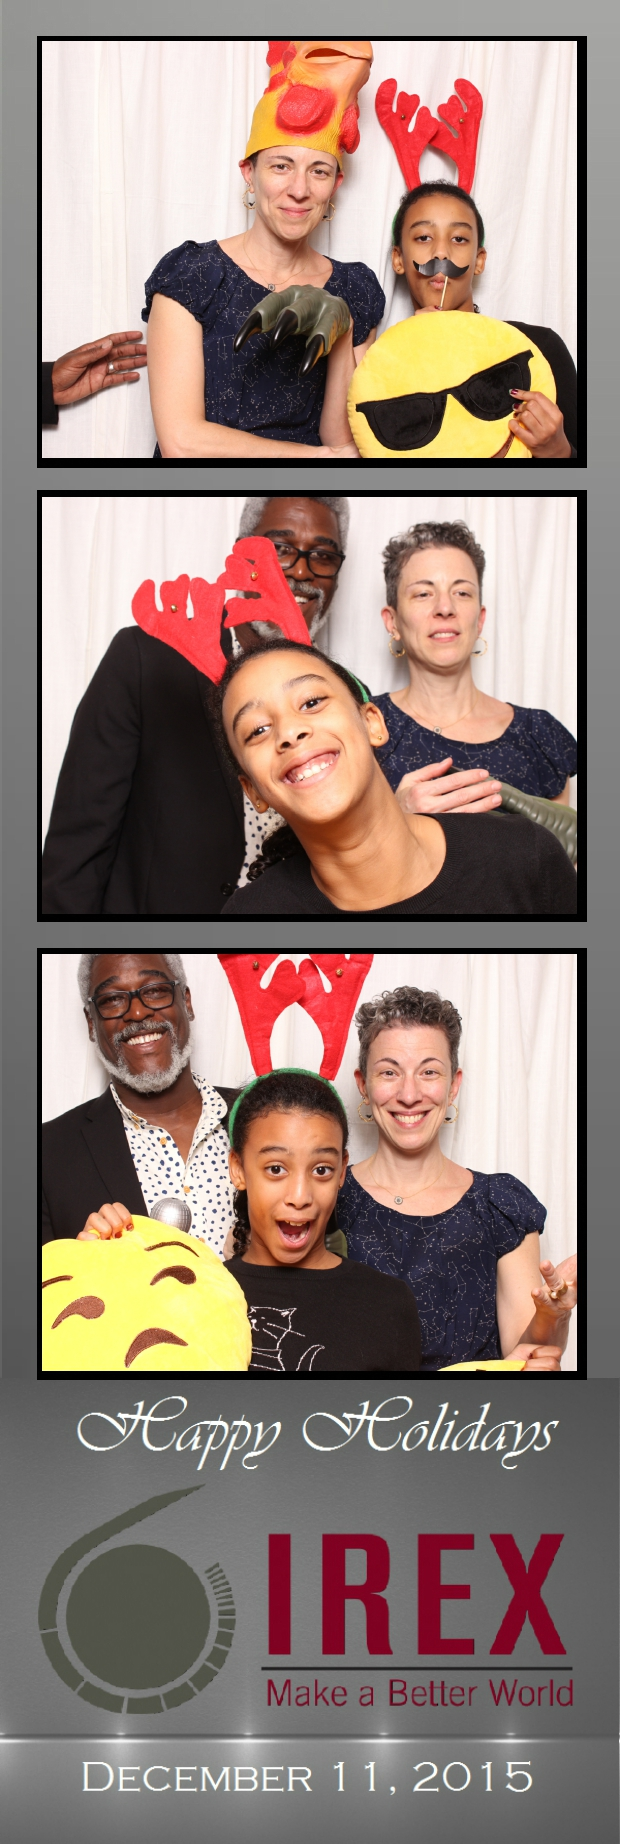 Guest House Events Photo Booth Strips IREX (19).jpg